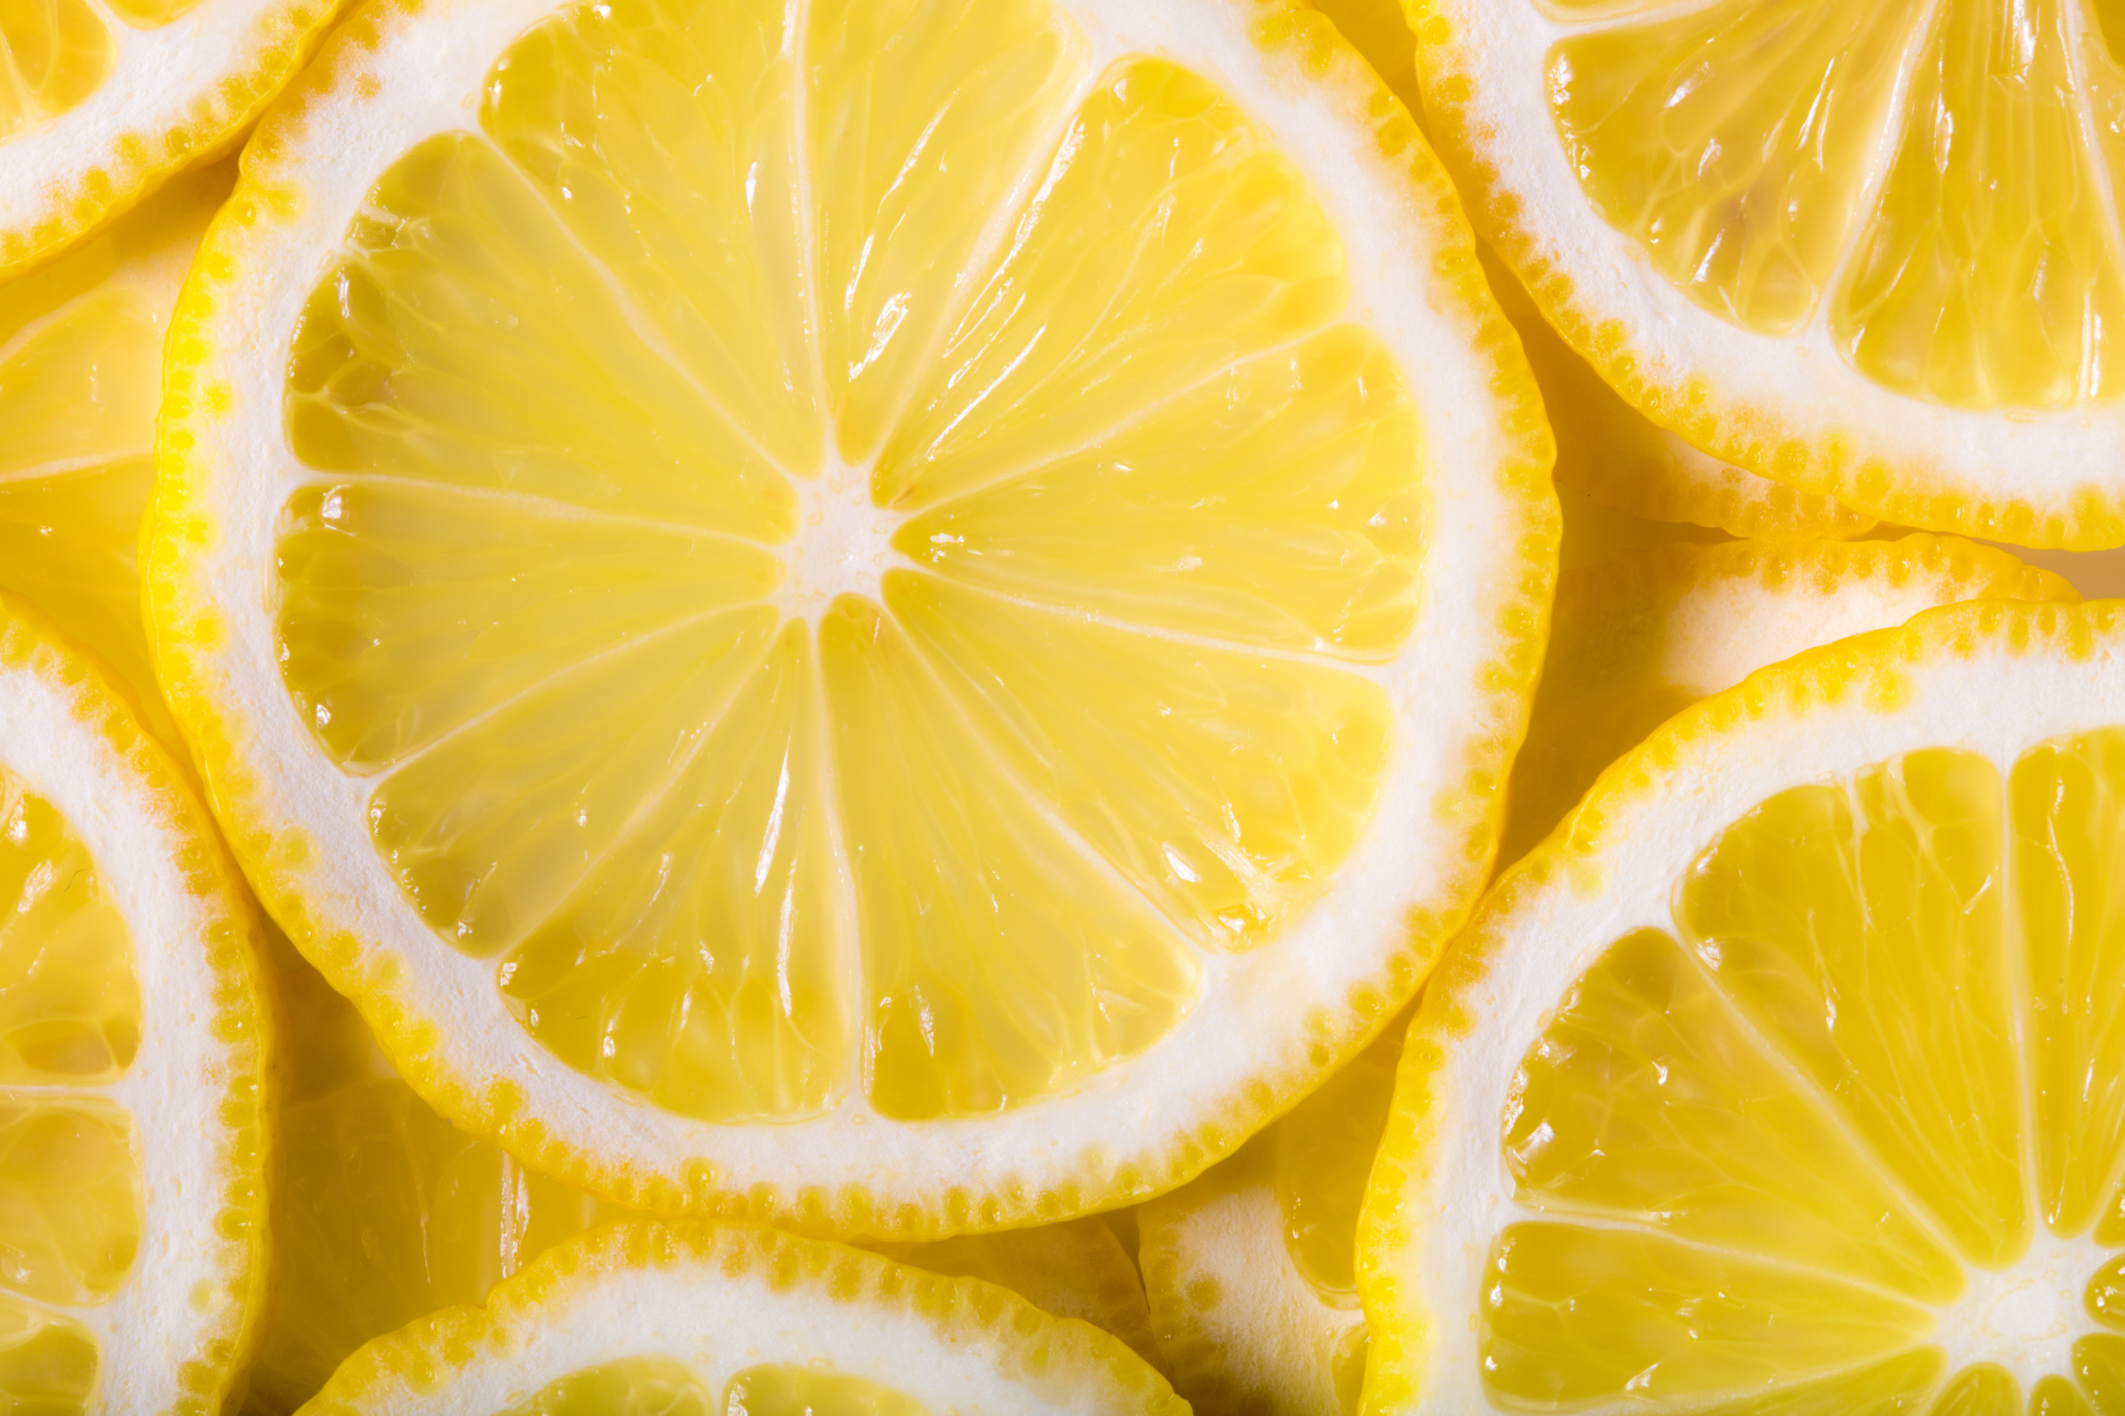 Mouth Sores & Low-Acid Fruits